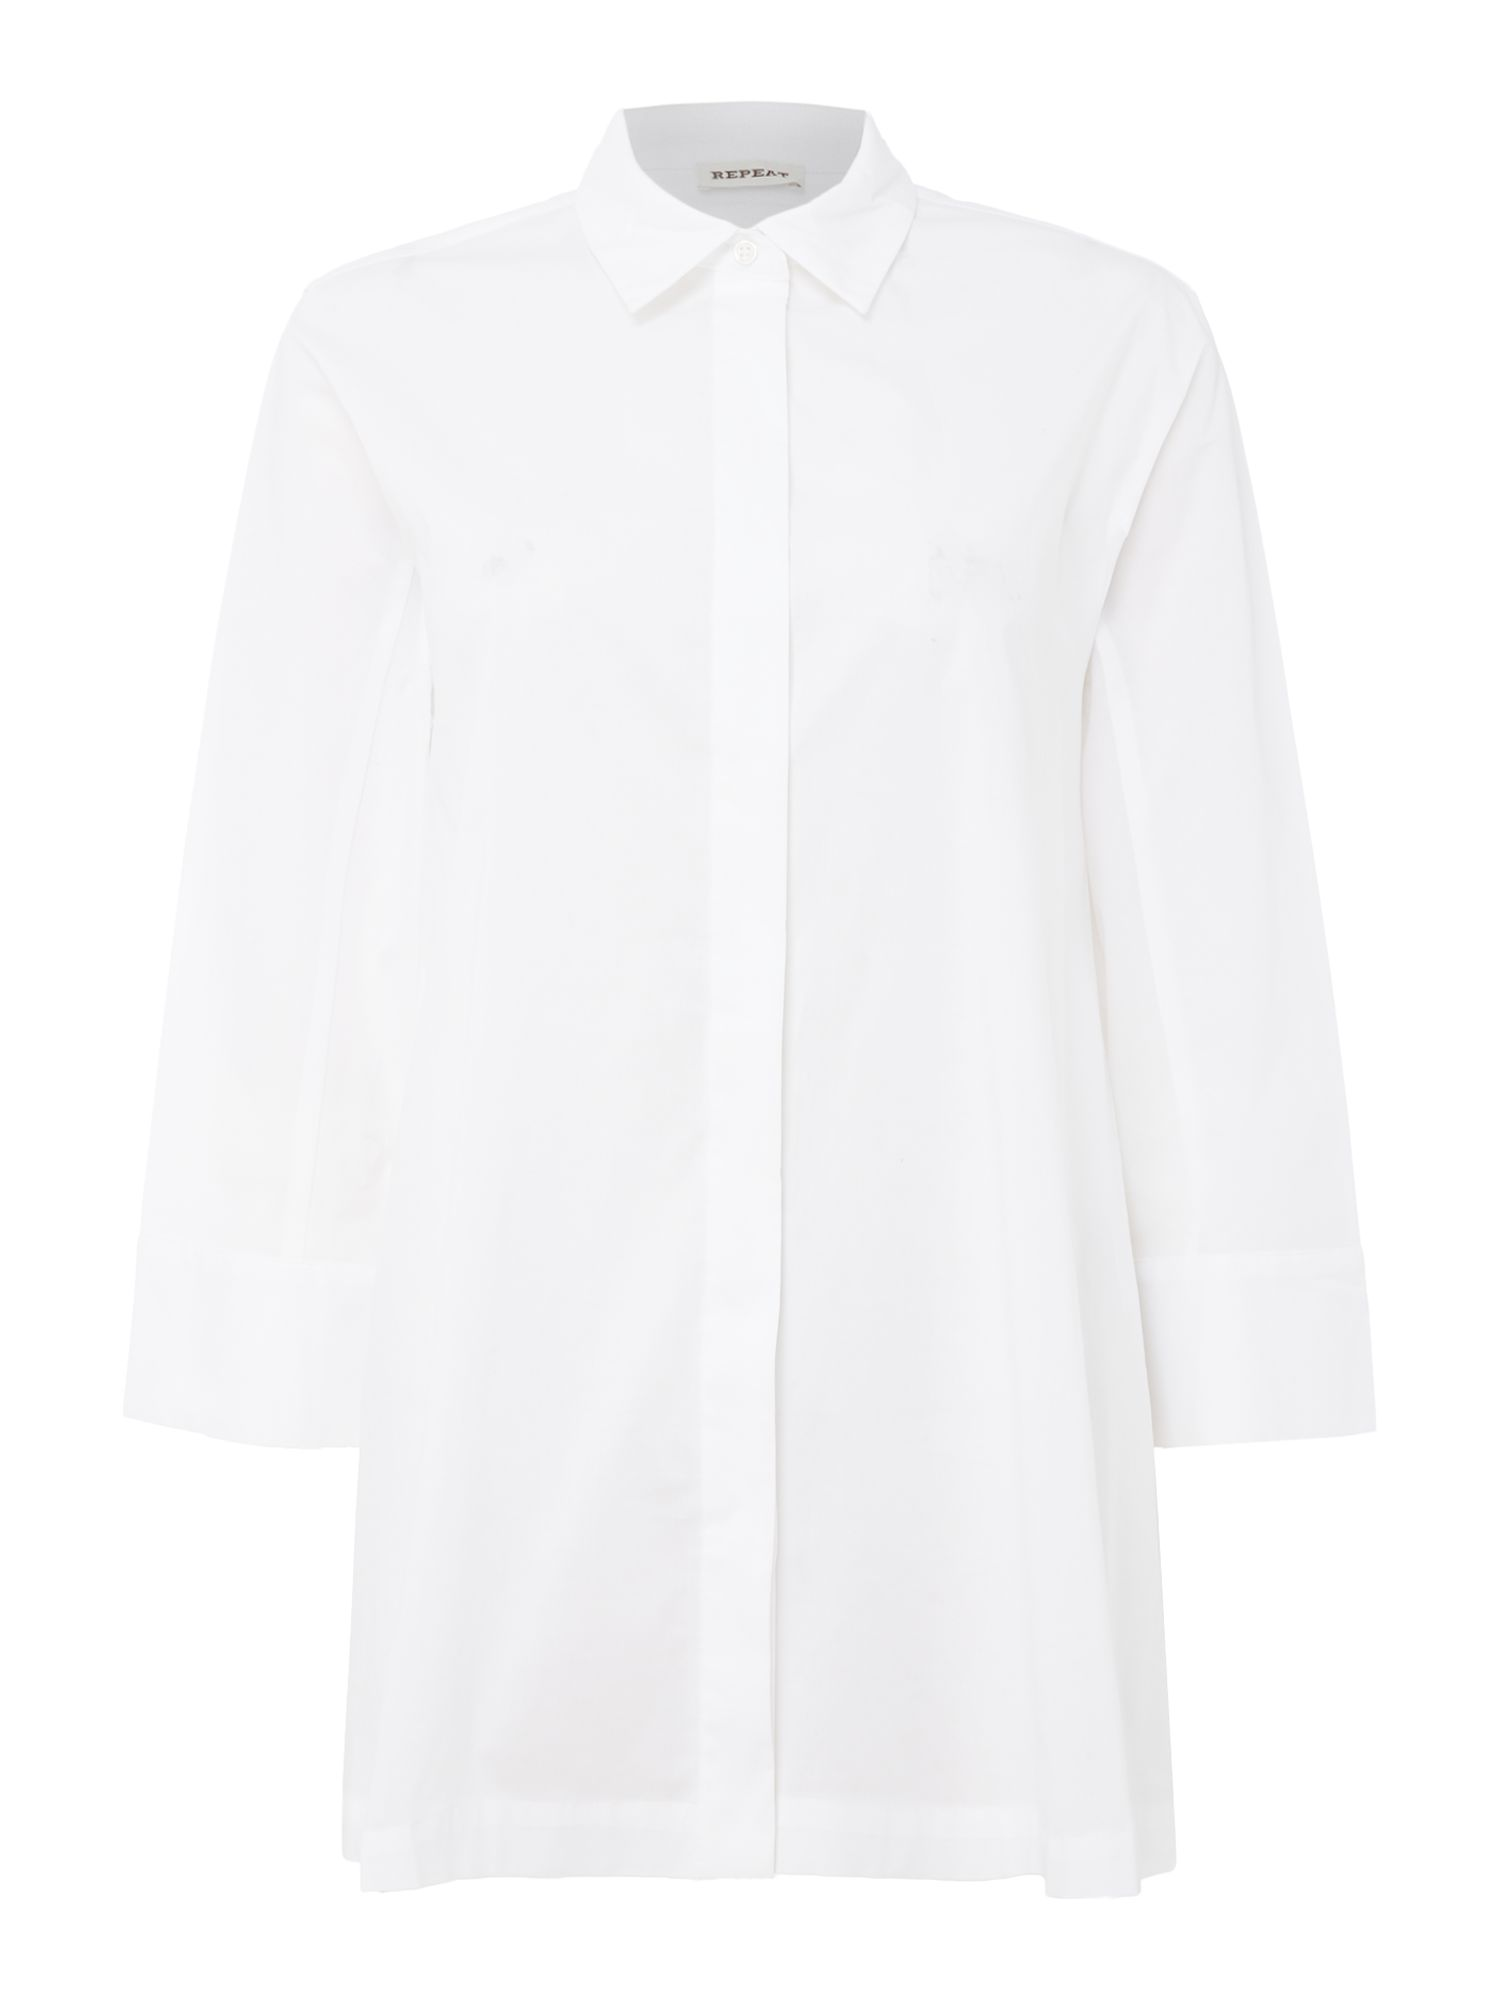 Repeat Cashmere Cotton elastane shirt, White